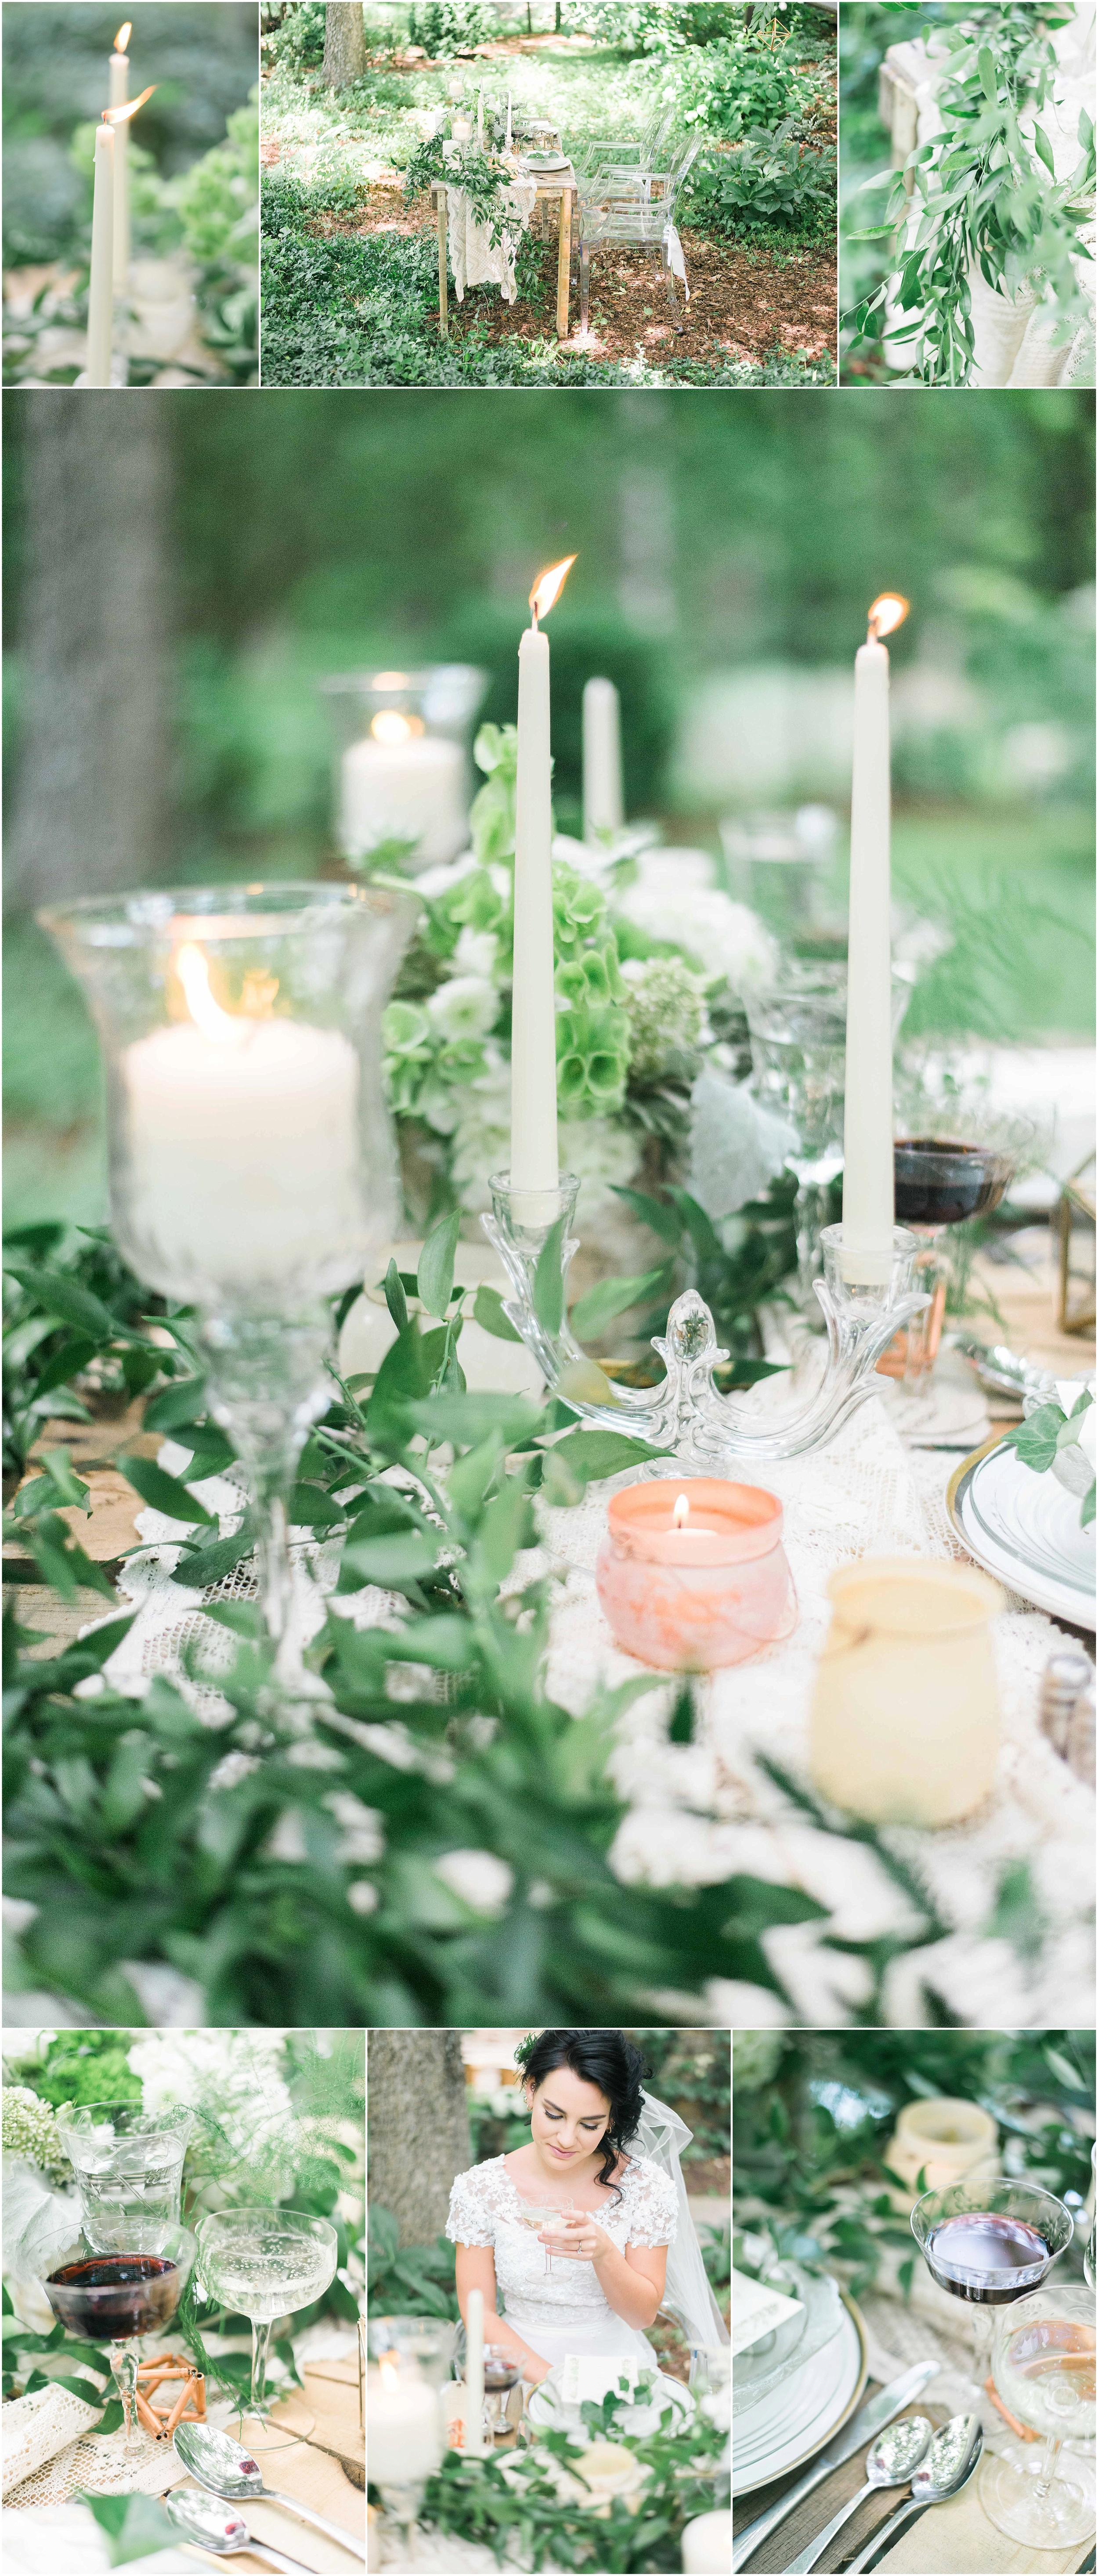 charlottesville_wedding Photographer_styled shoot_Style Me Pretty Feature4